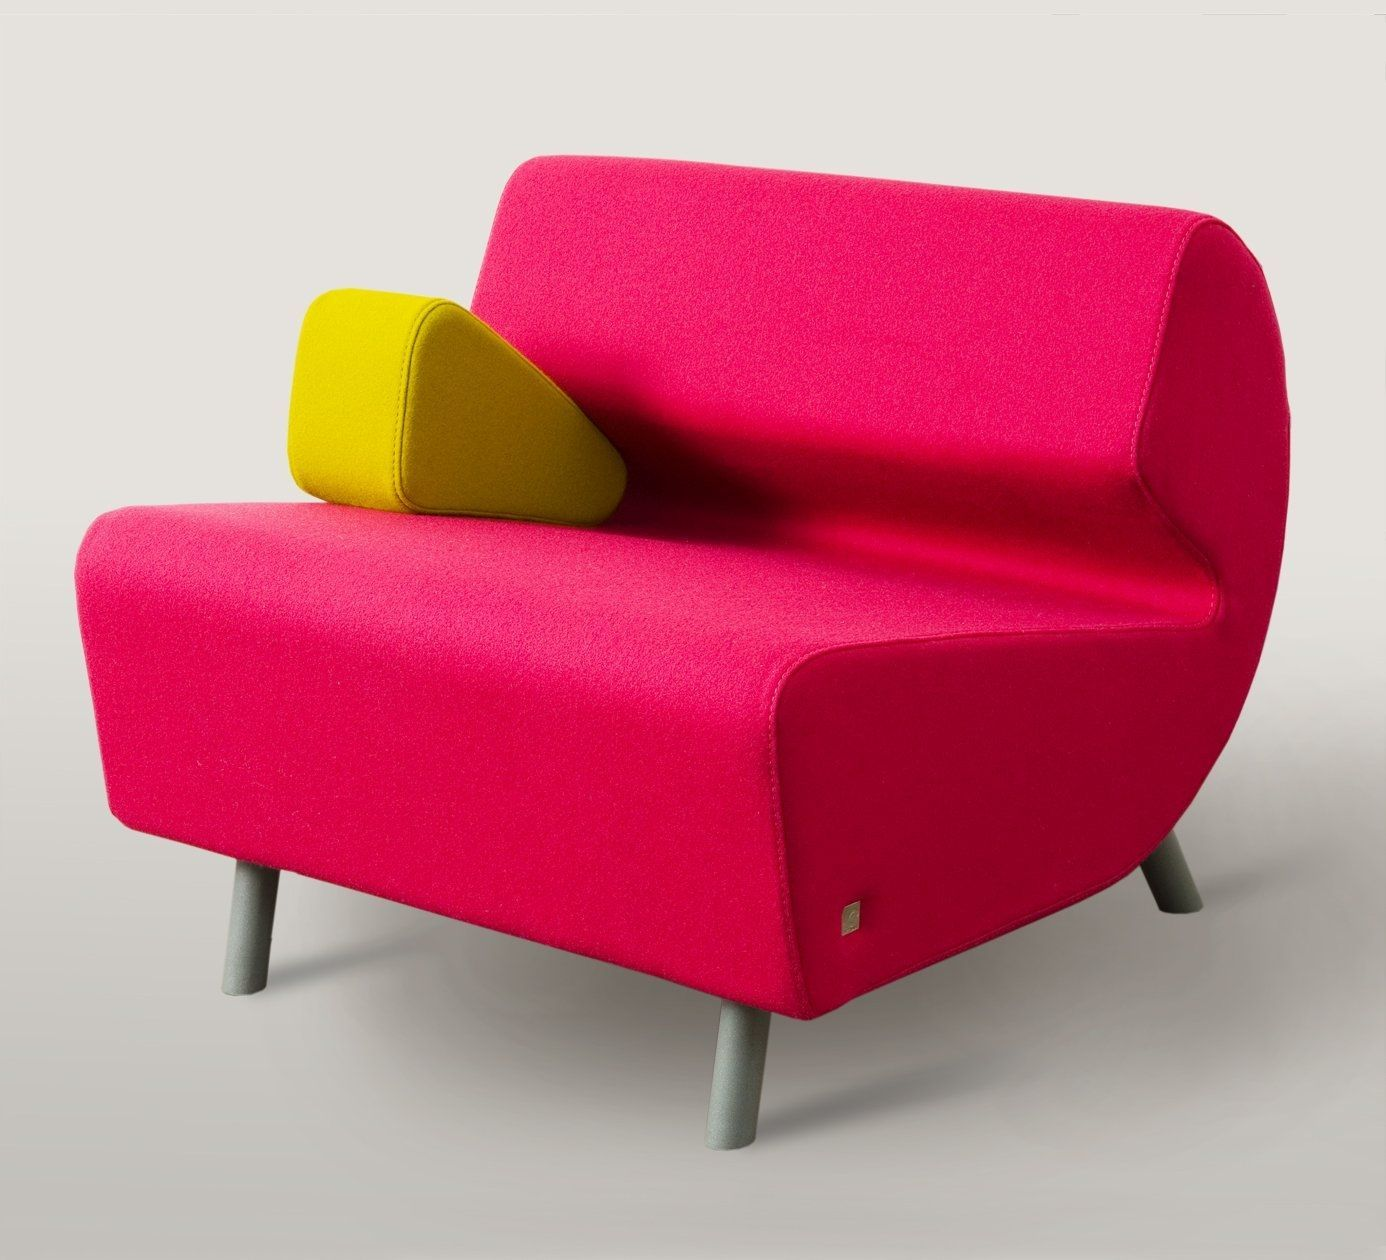 Muebles Pop Art Pin De Nicole Mendizabal En Pop Art